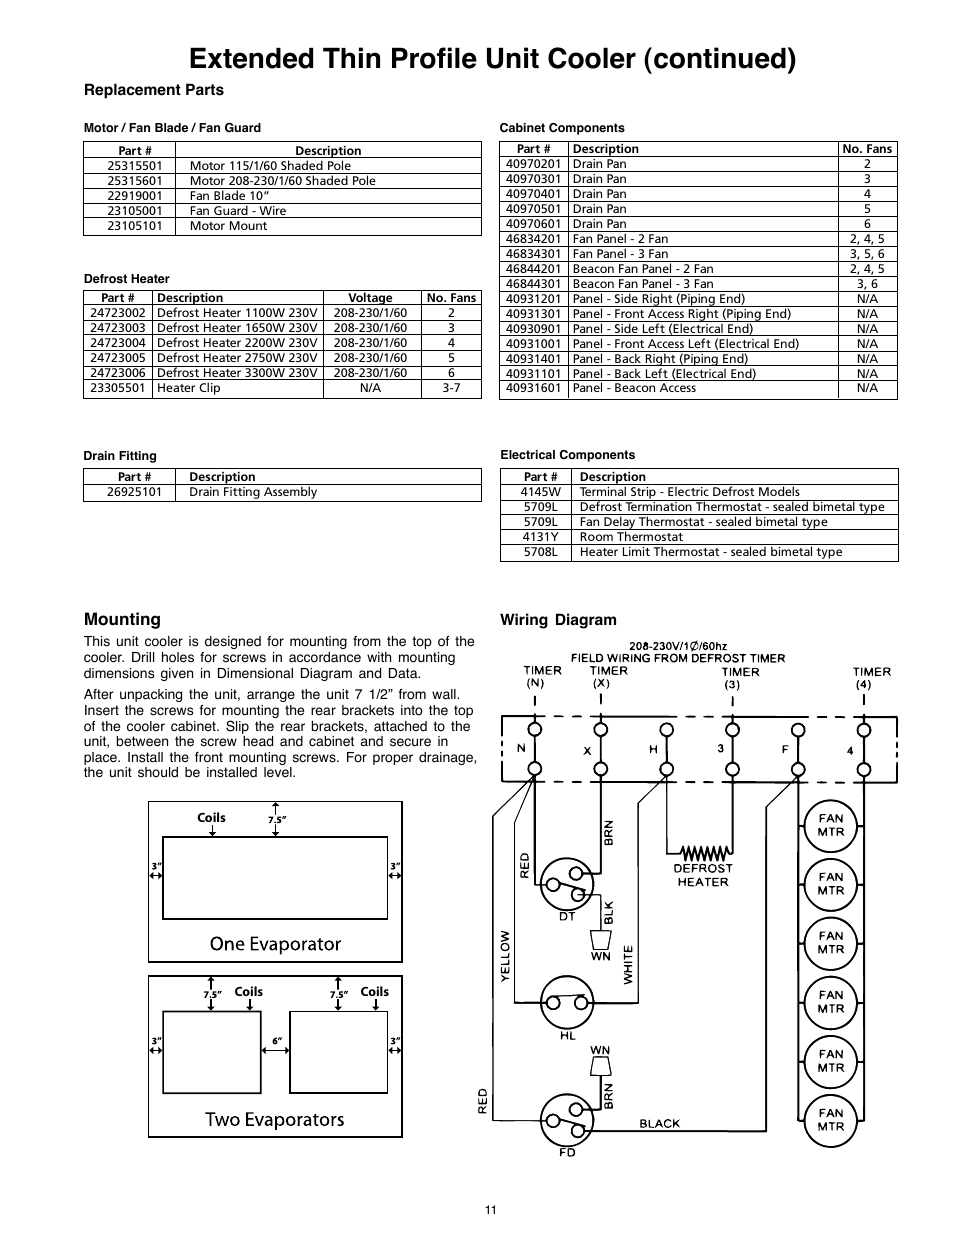 heatcraft refrigeration products 25005601 page11 extended thin profile unit cooler (continued), mounting heatcraft wiring diagram at mifinder.co